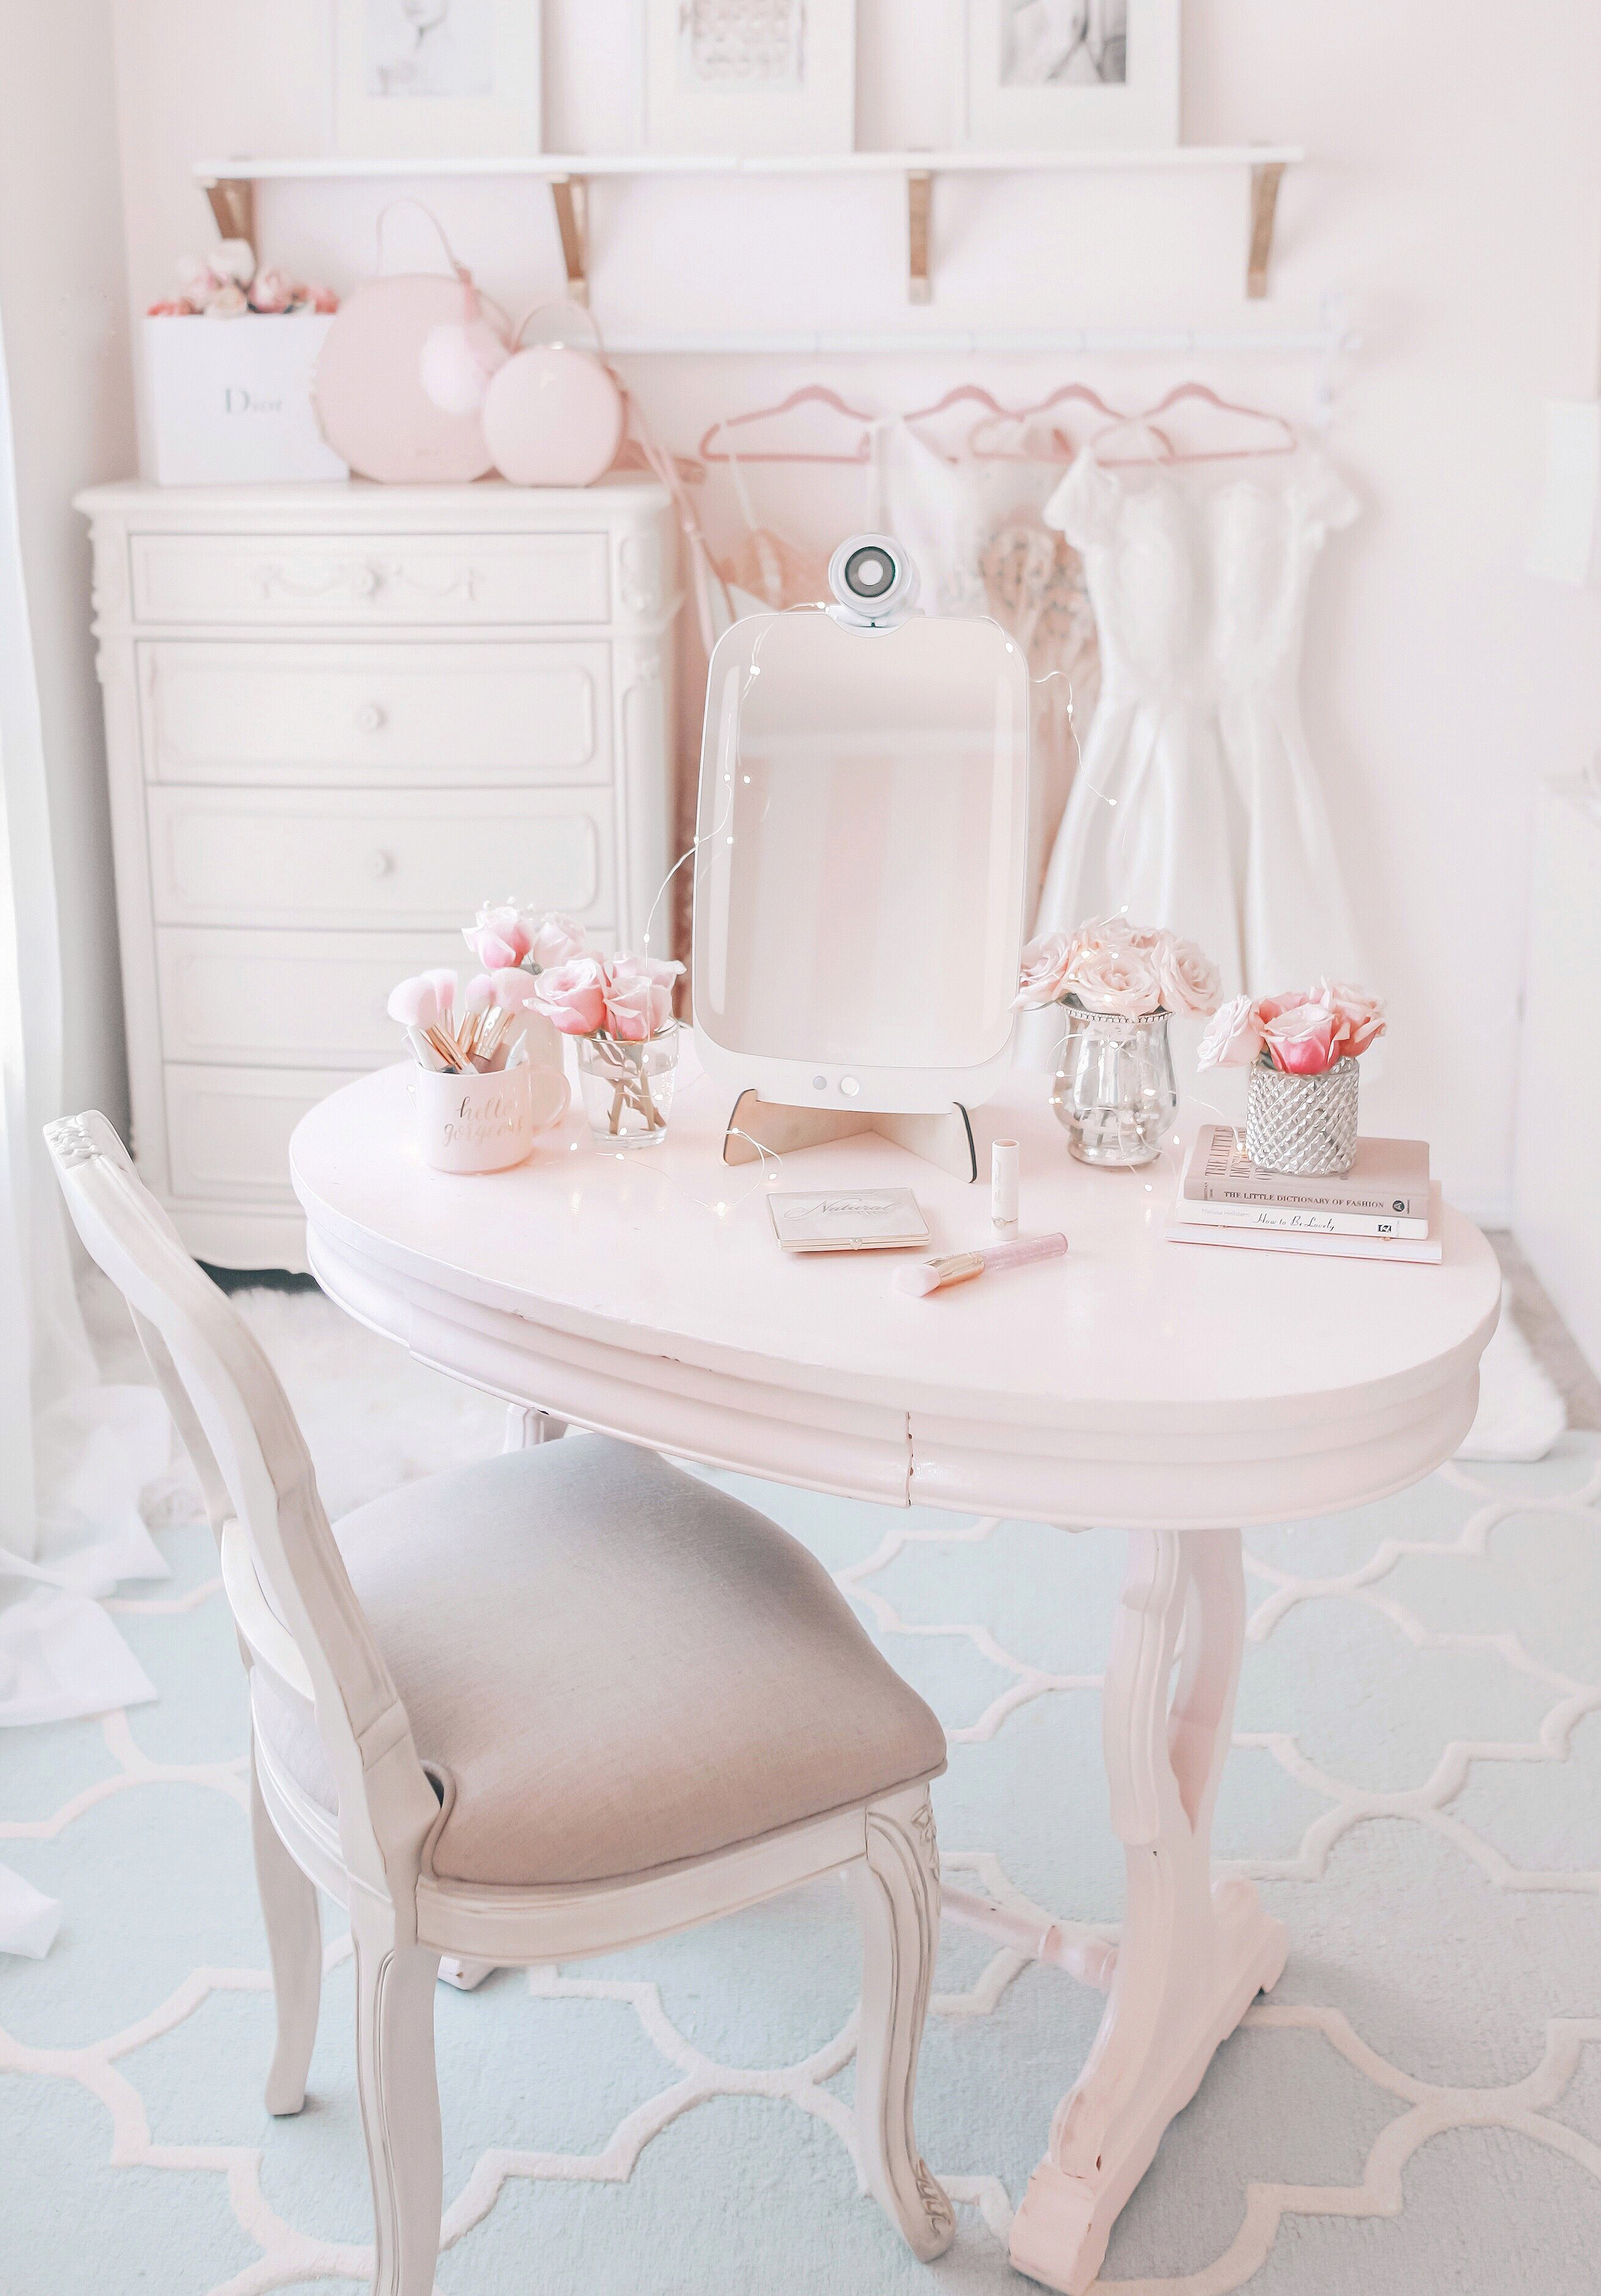 Say Hello To Himirror A Mirror Of The Future Favorites Pink Bedroom Decor Pink Bedrooms